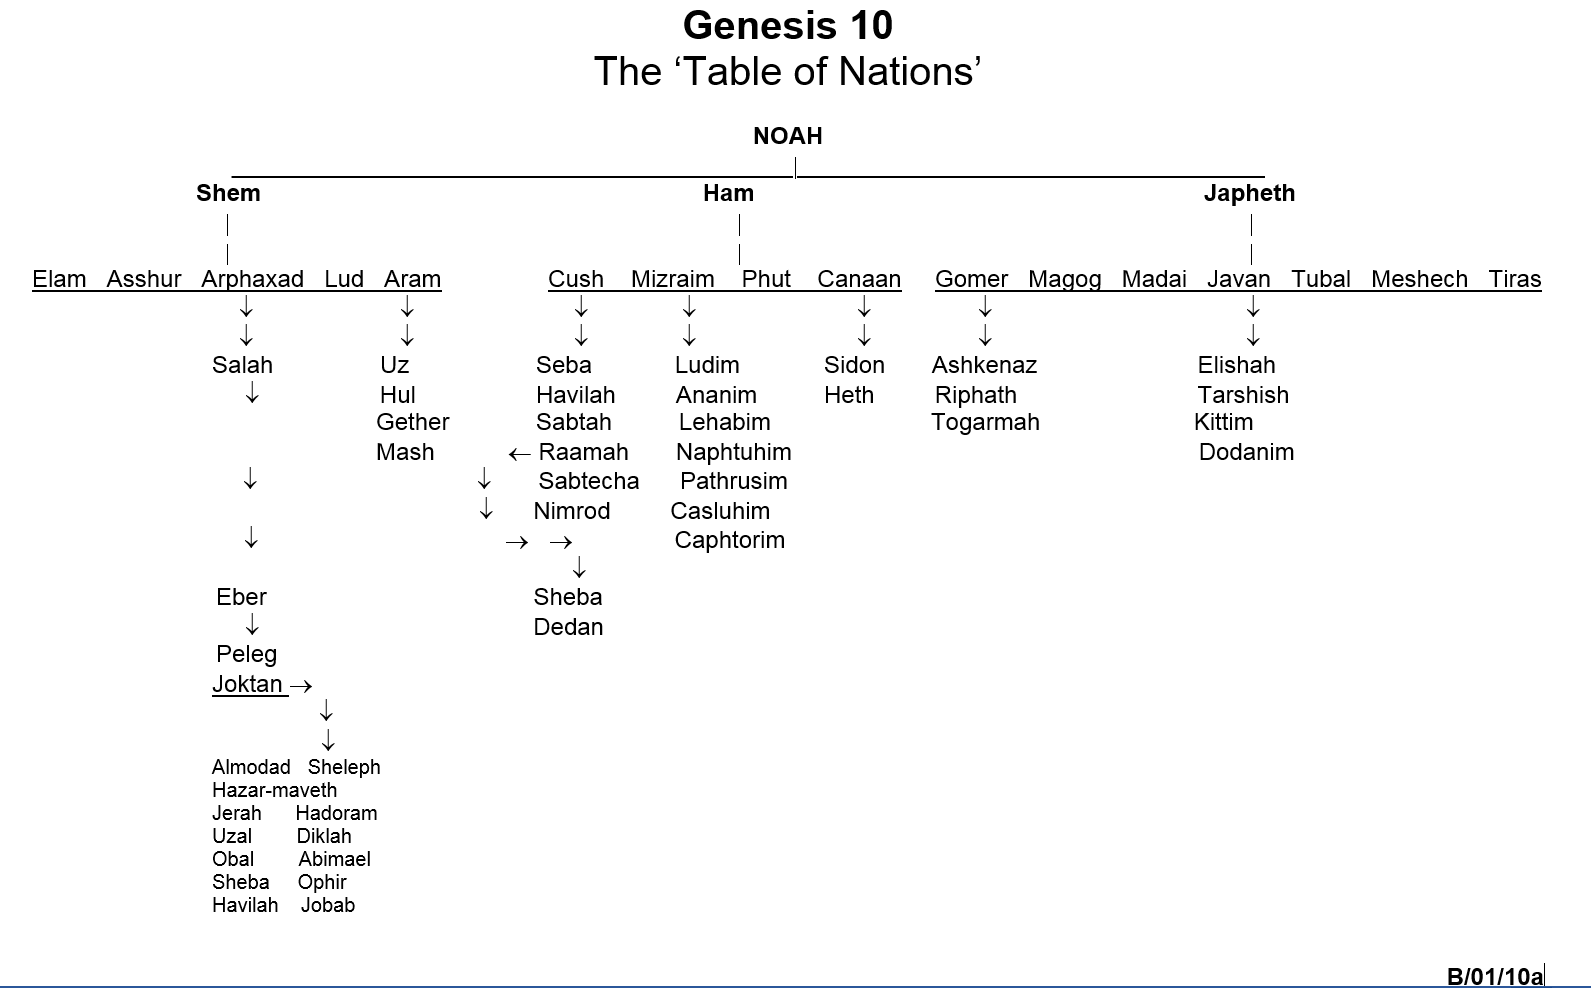 Genesis 10 The Table Of Nations Showing Descendants Noah Click To Enlarge